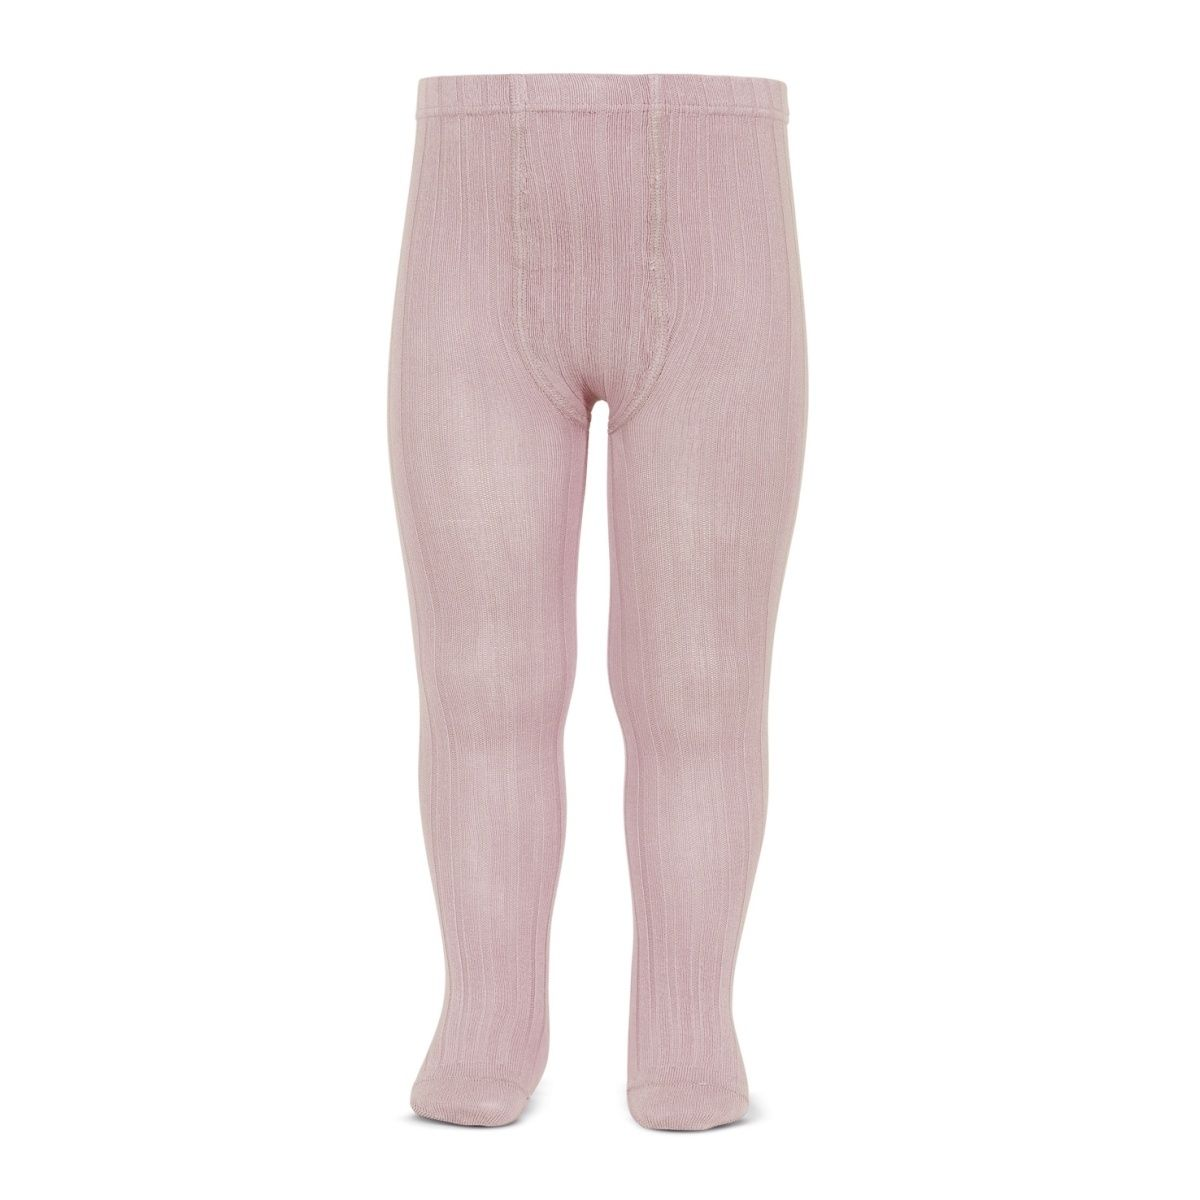 Condor Wide Ribbed Cotton Tights pale pink